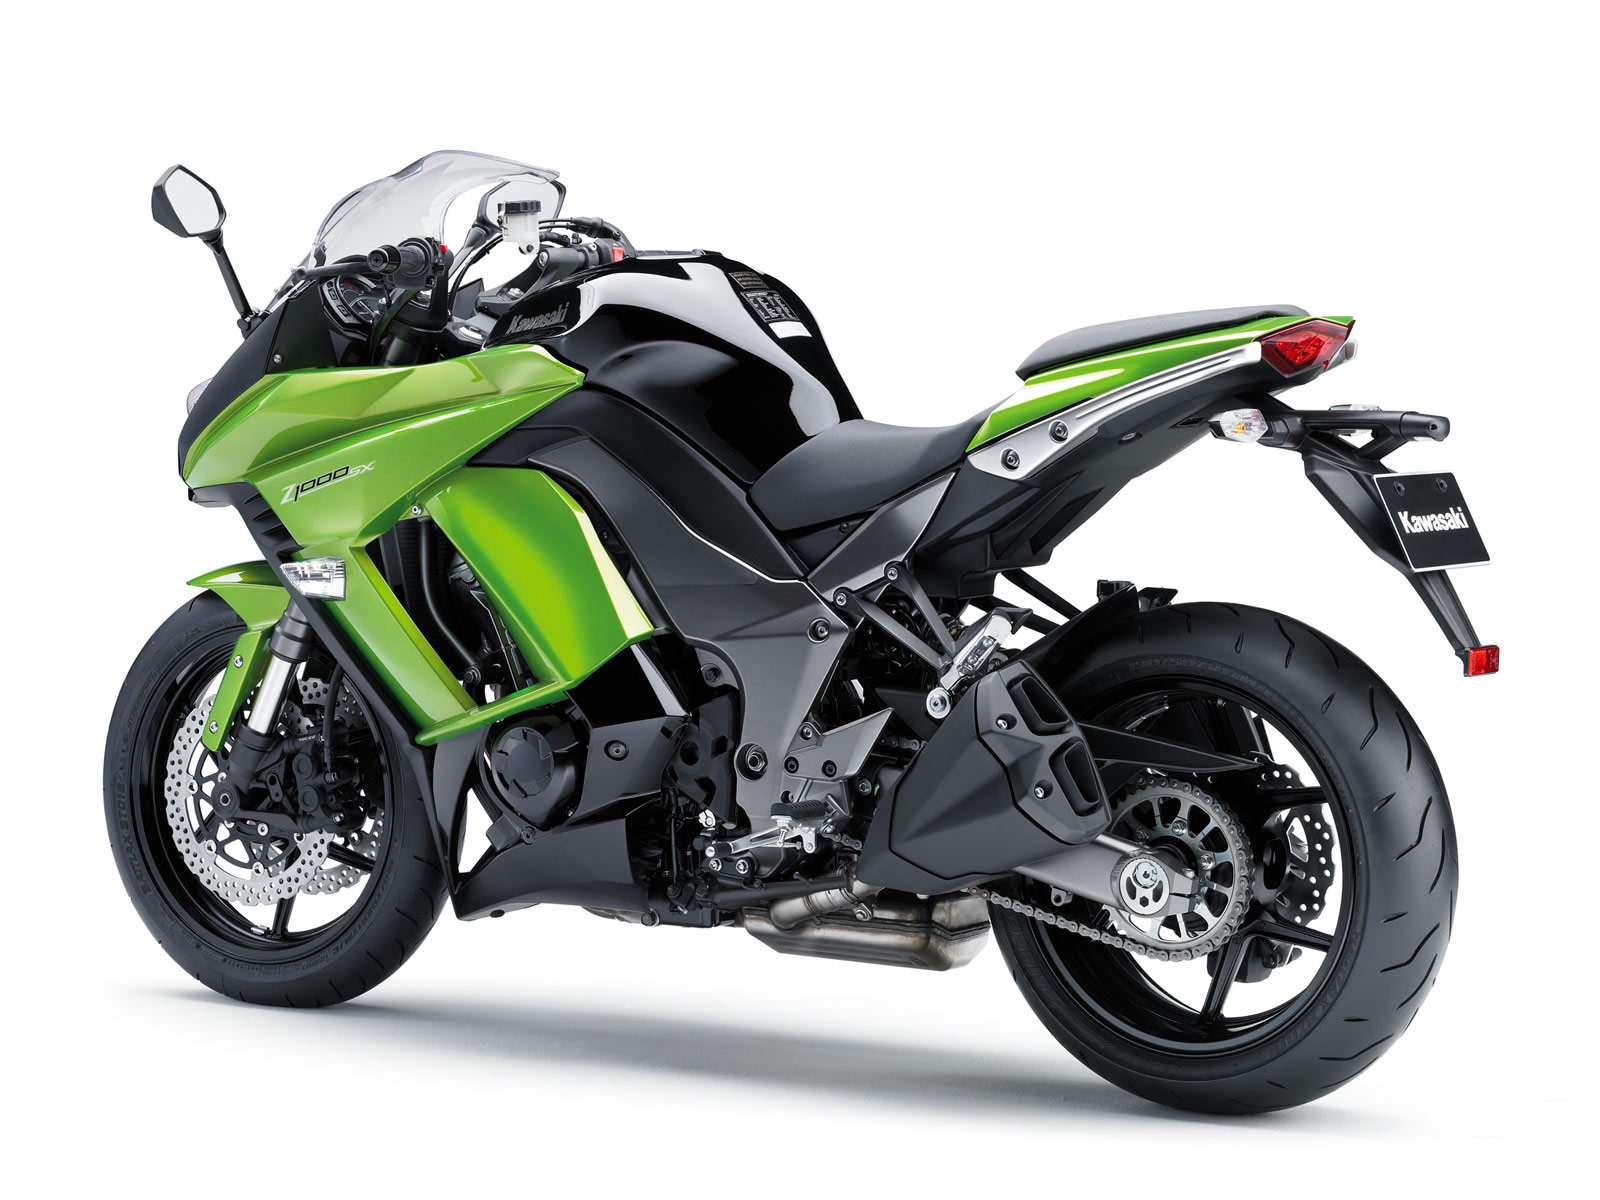 kawasaki z 1000 sx pictures 2011 auto accident lawyers info. Black Bedroom Furniture Sets. Home Design Ideas